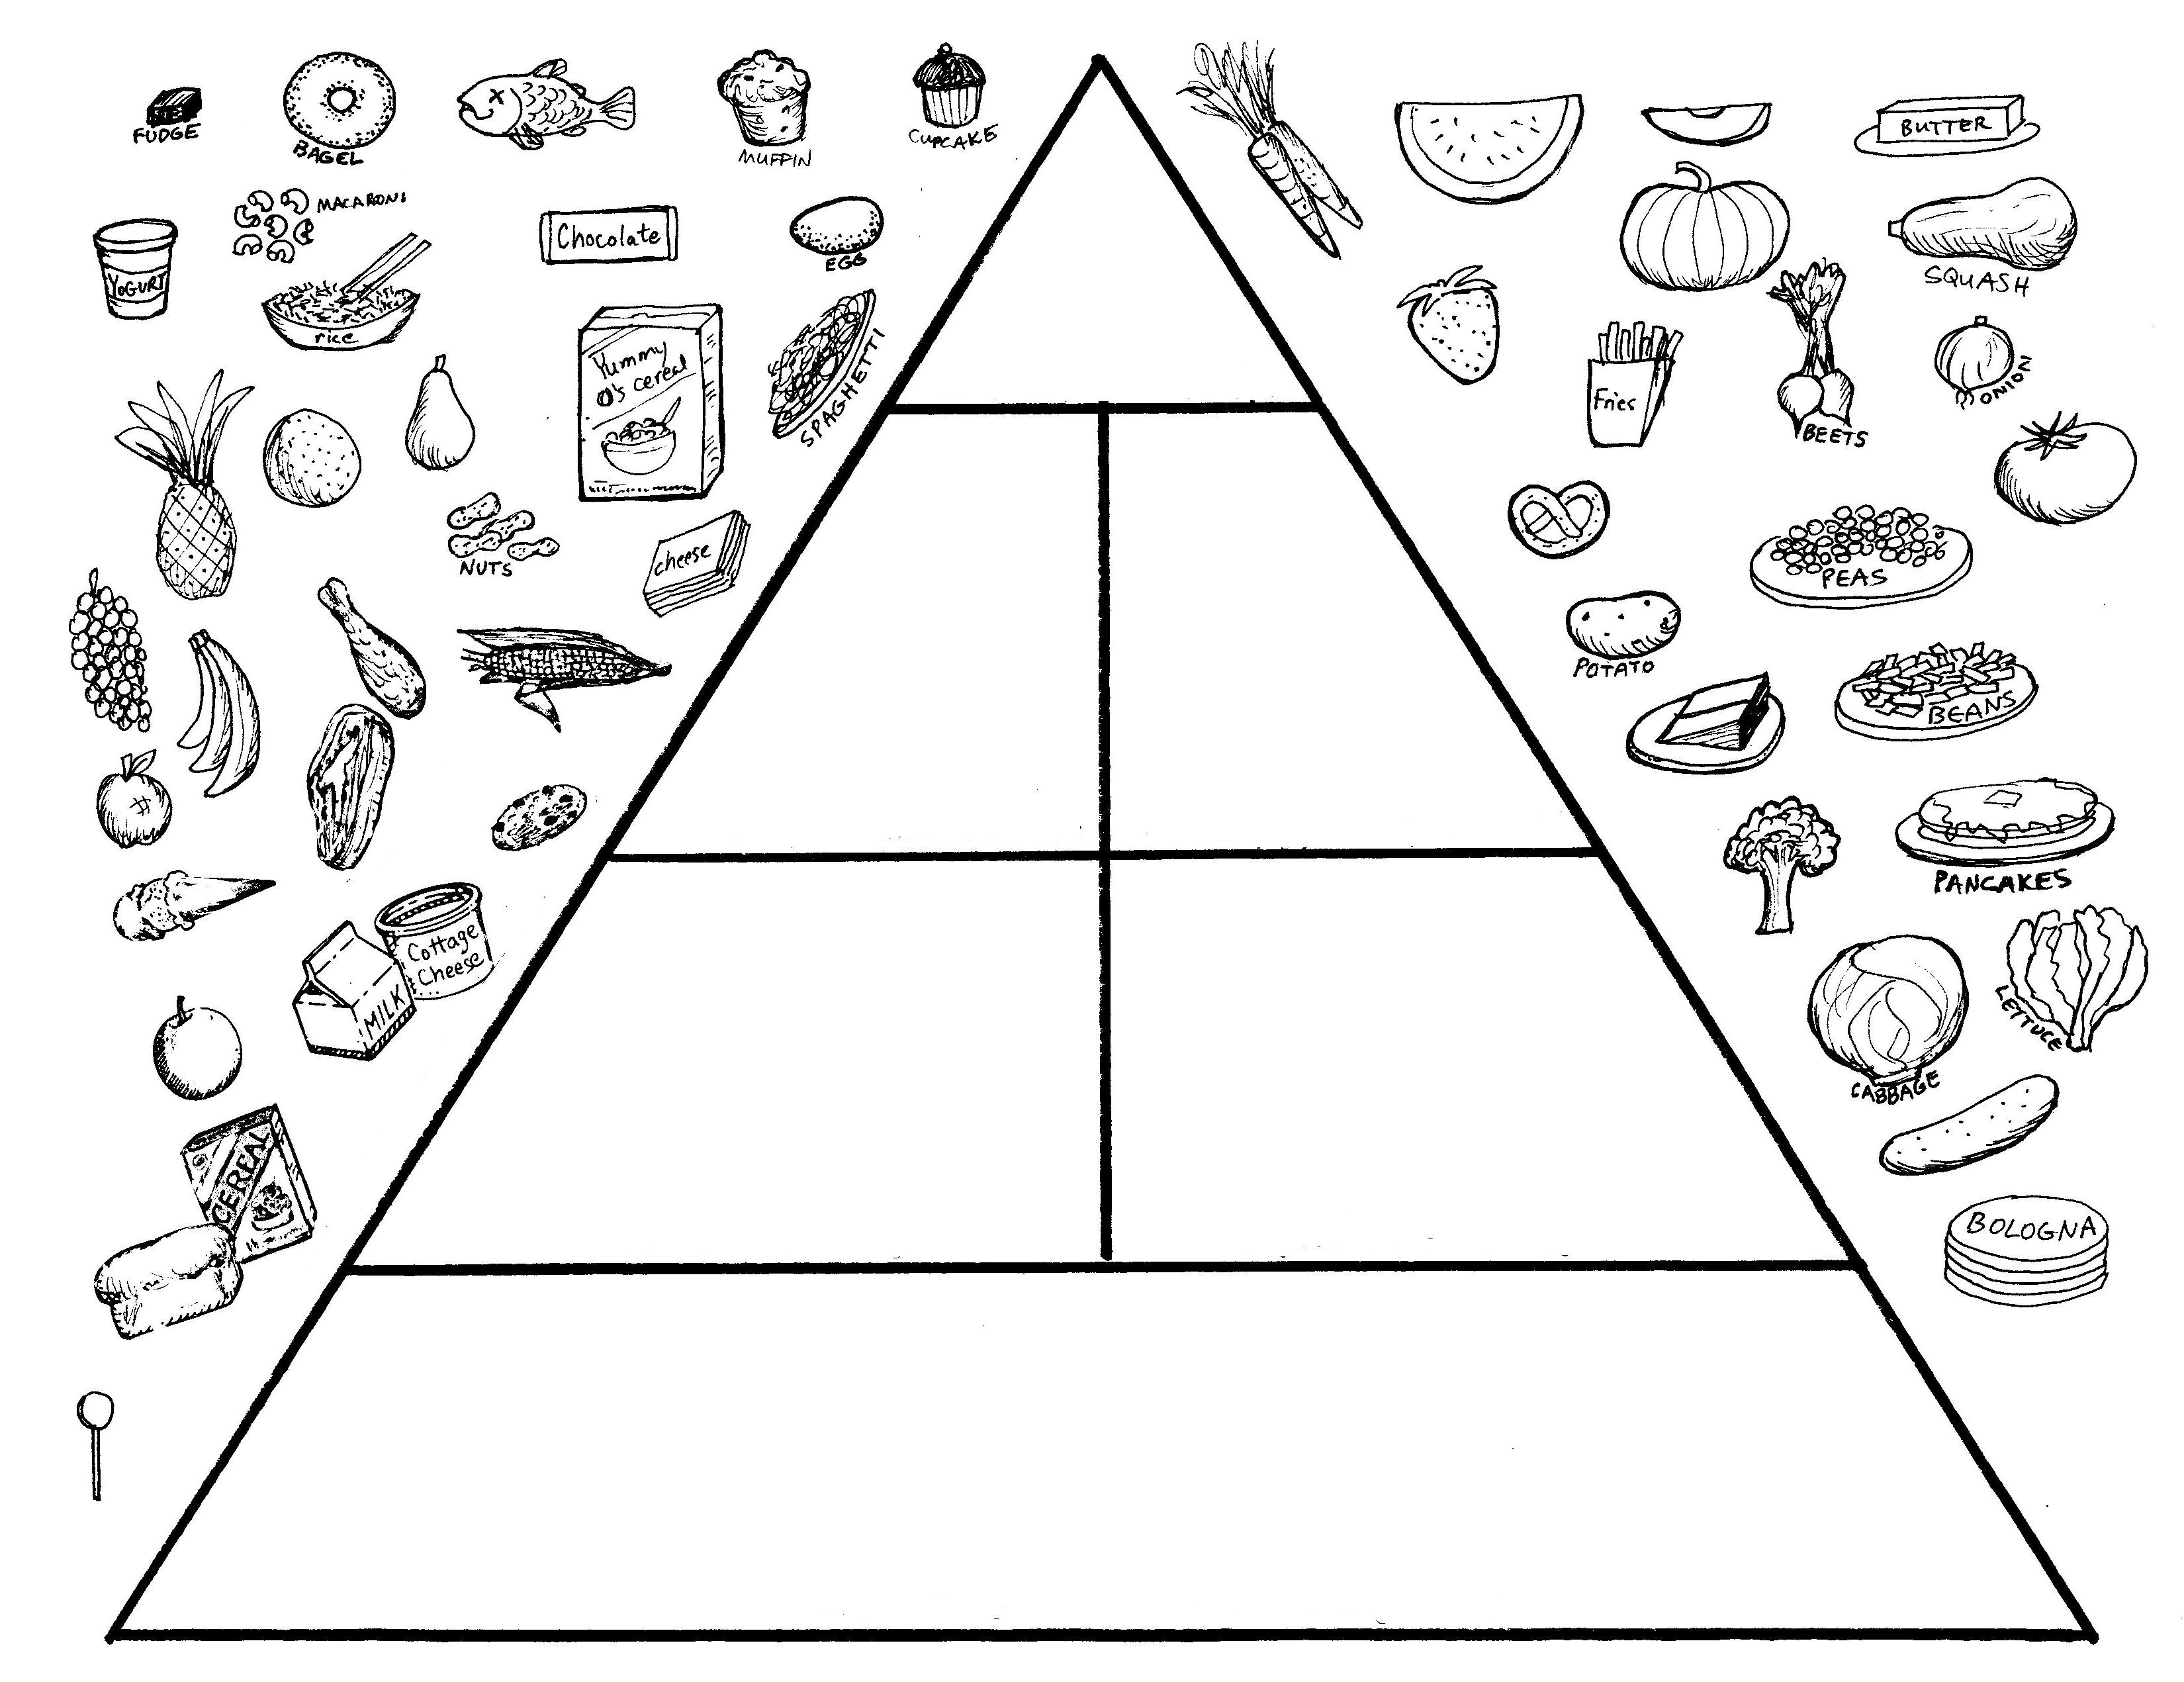 4 Images of Printable Food Pyramid